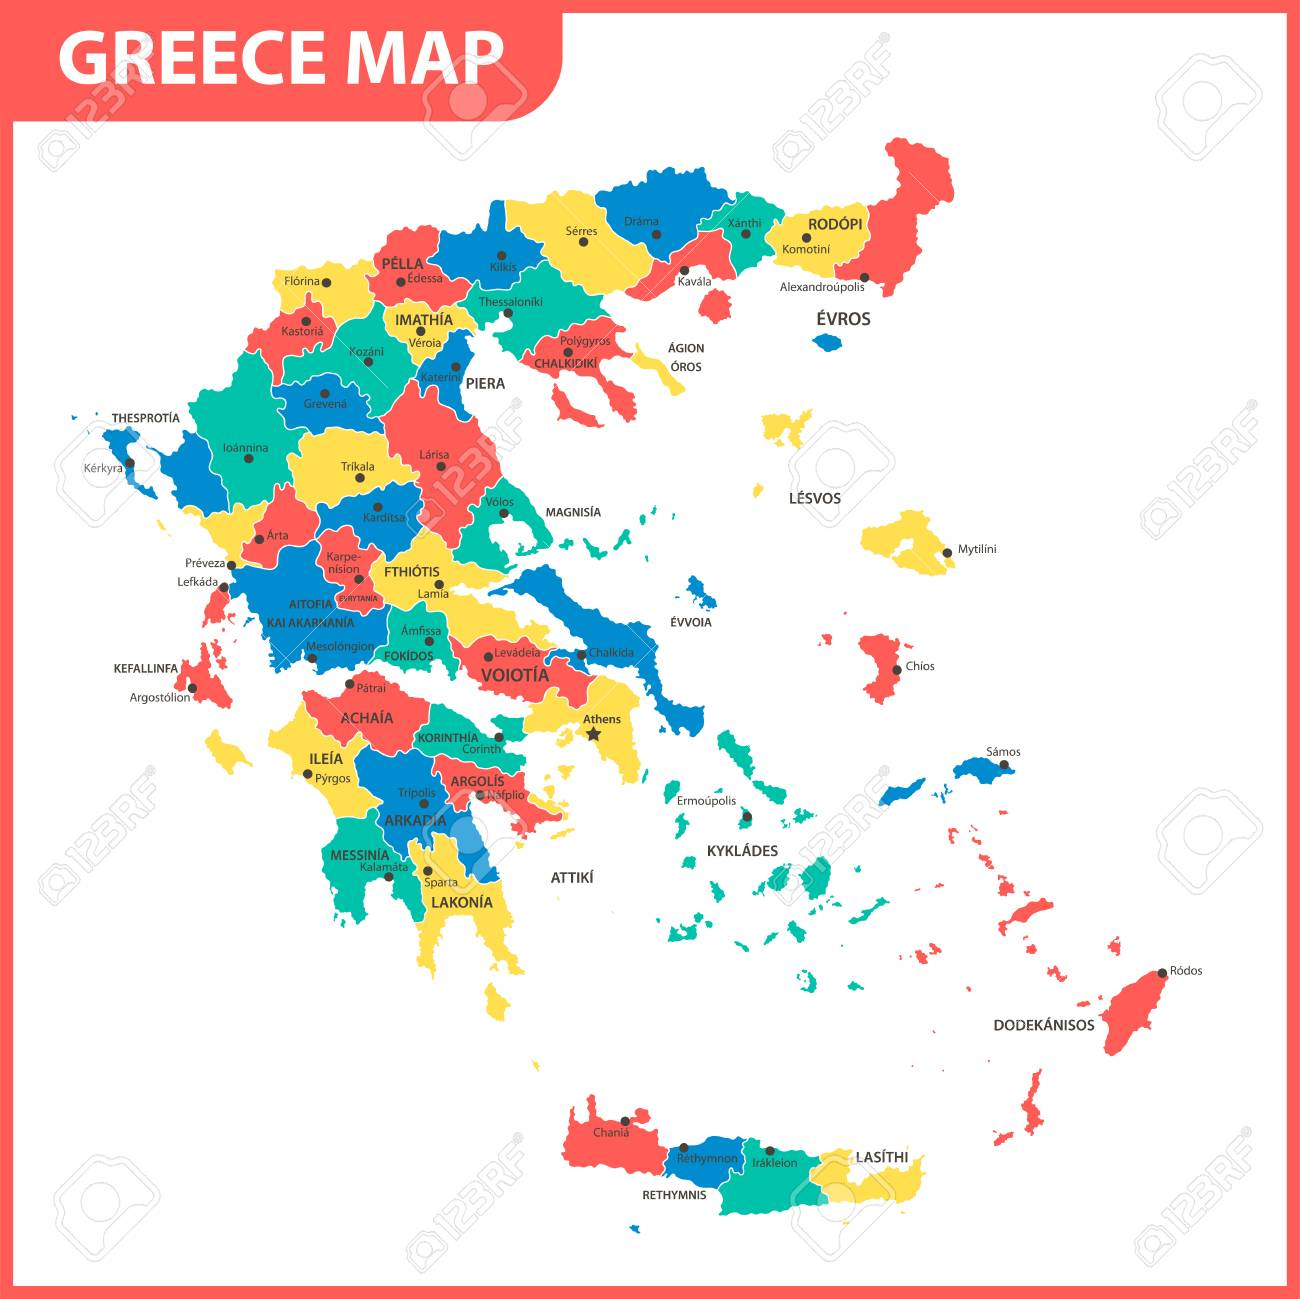 The Detailed Map Of Greece With Regions Or States And Cities ... on